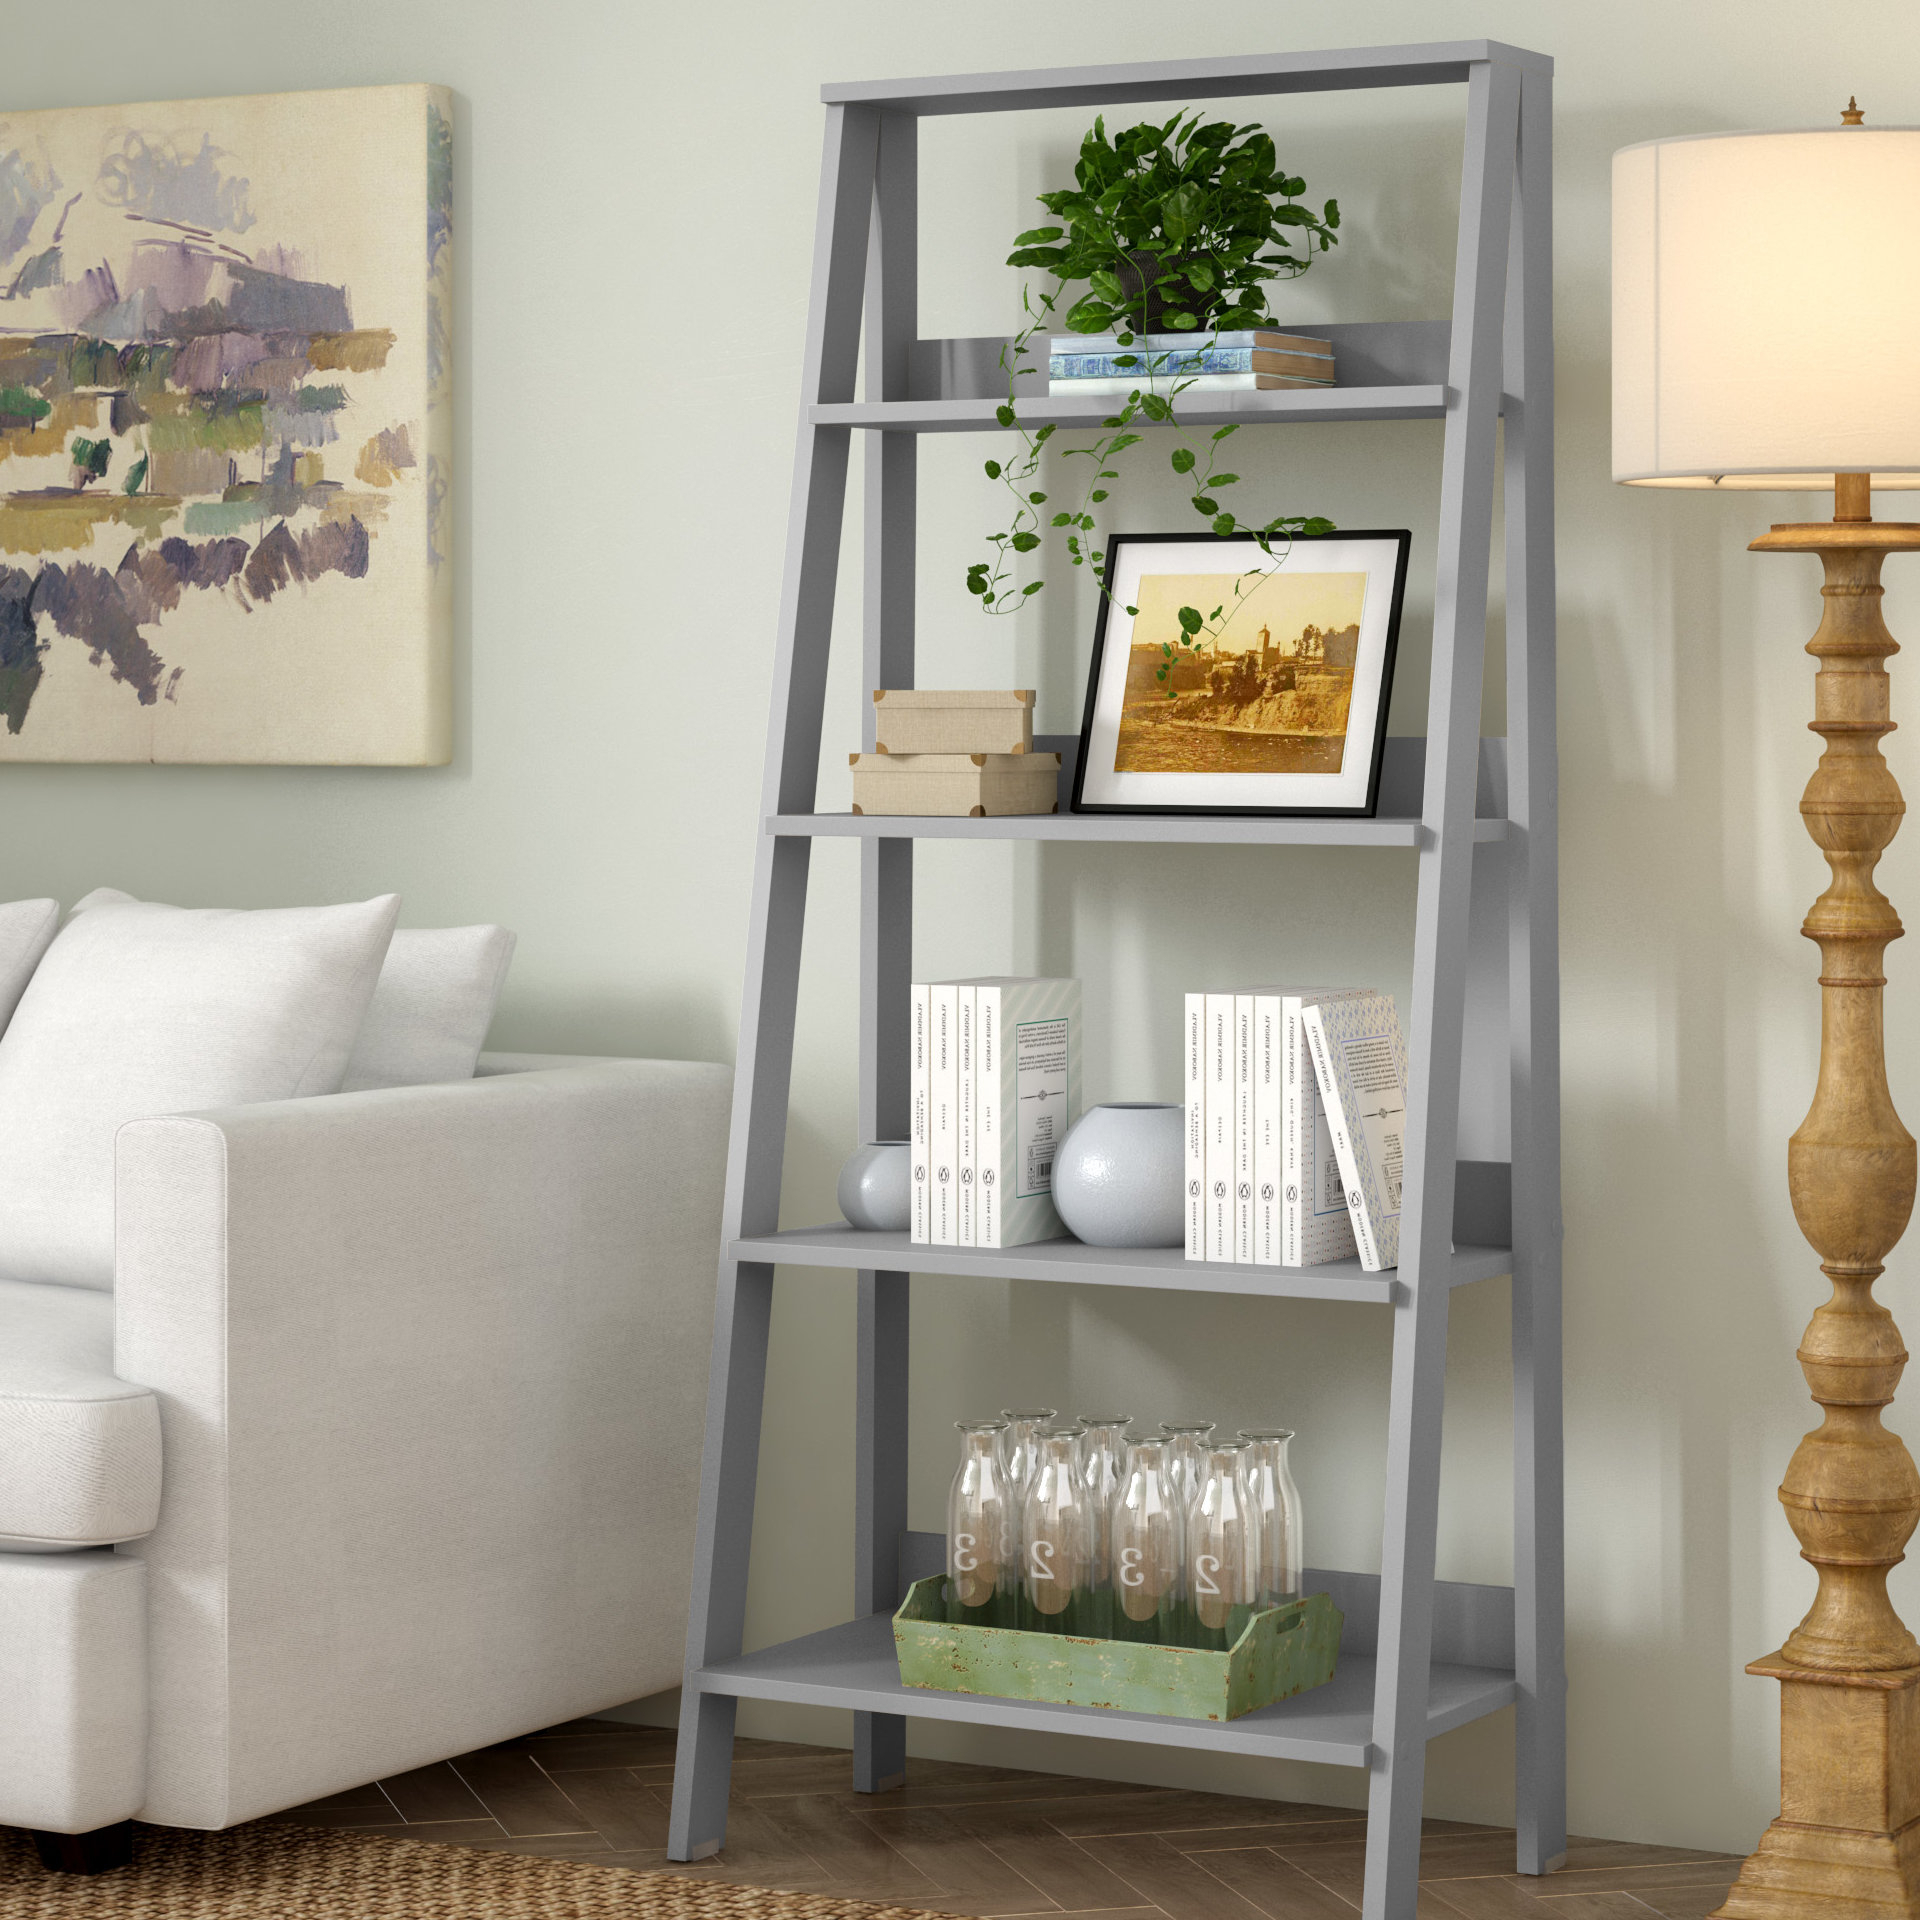 Farmhouse & Rustic Leaning Bookcases & Bookshelves (View 16 of 20)